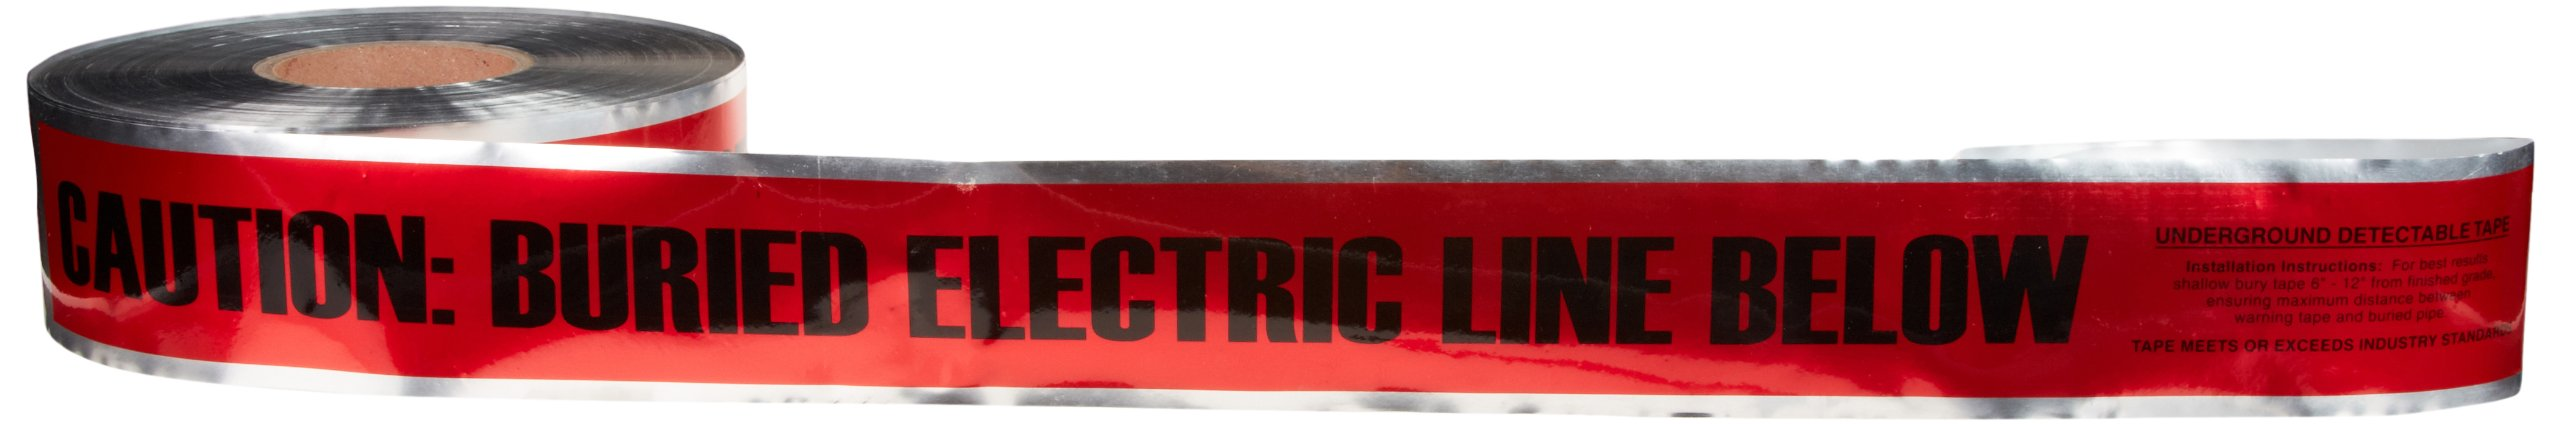 Underground Line Tape, Legend''Caution Buried Electric Line Below'', 1000' Length x 6'' Width, Red